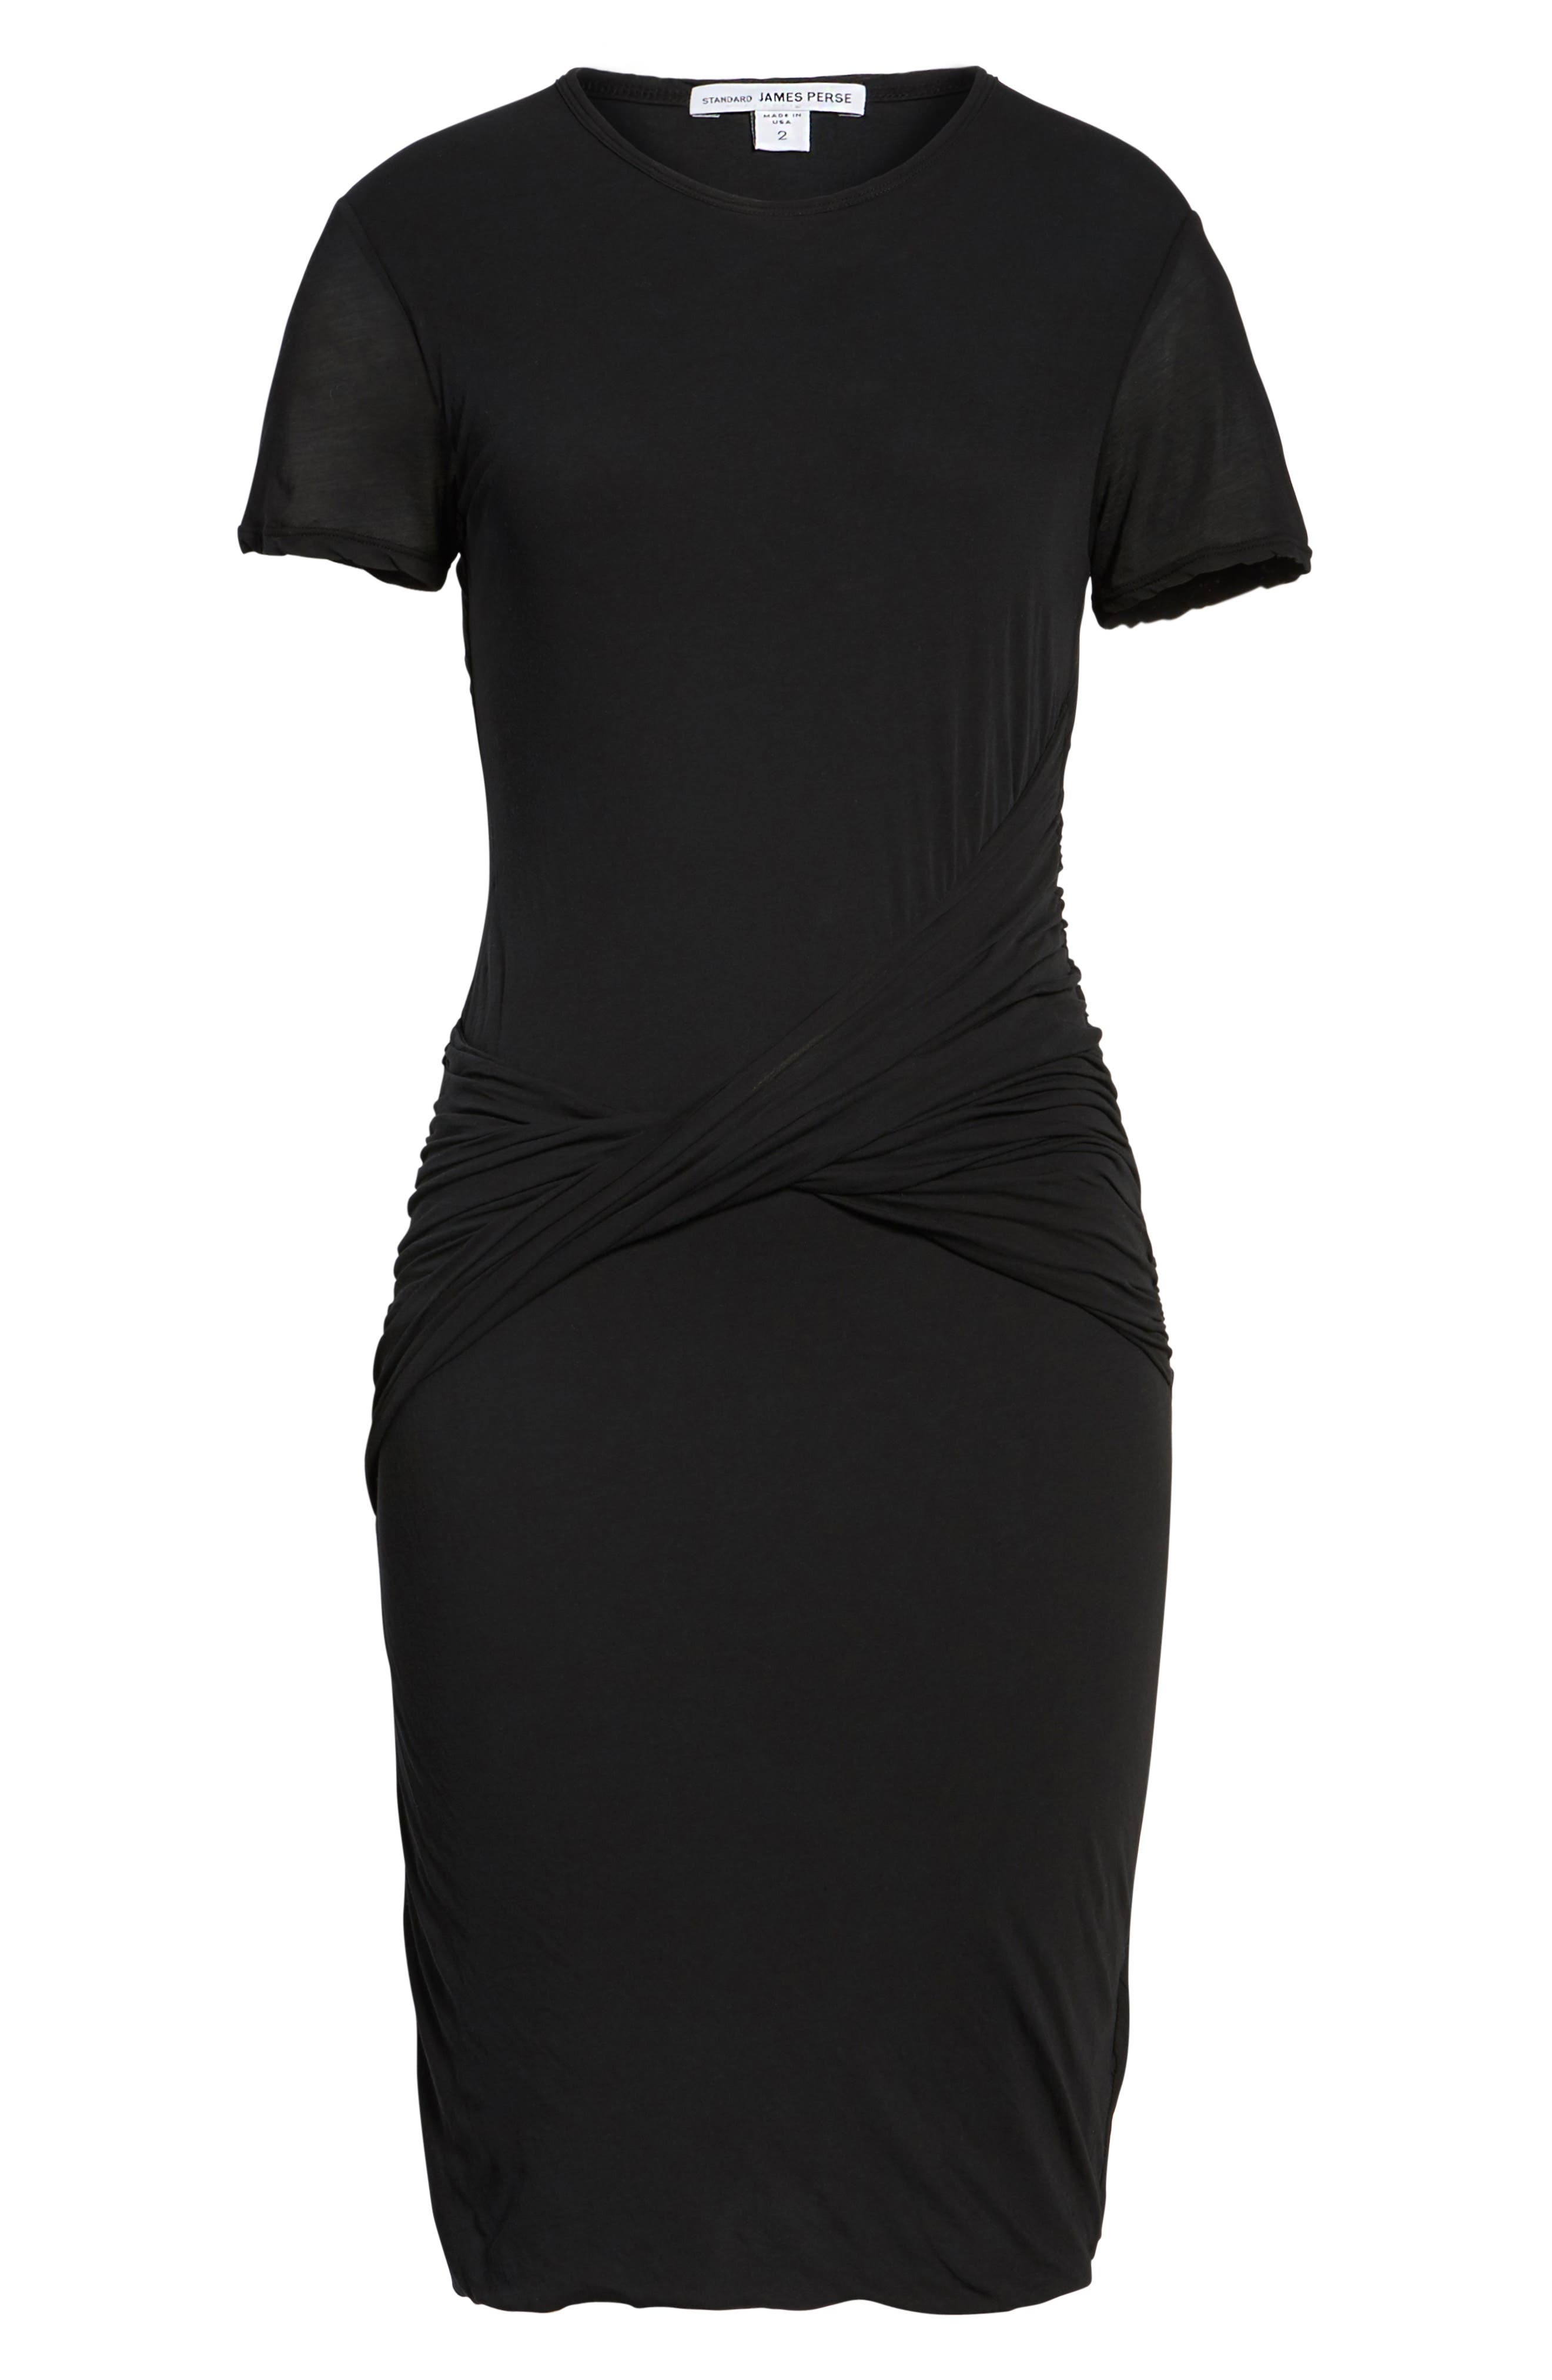 Twisted Drape T-Shirt Dress,                             Alternate thumbnail 6, color,                             001